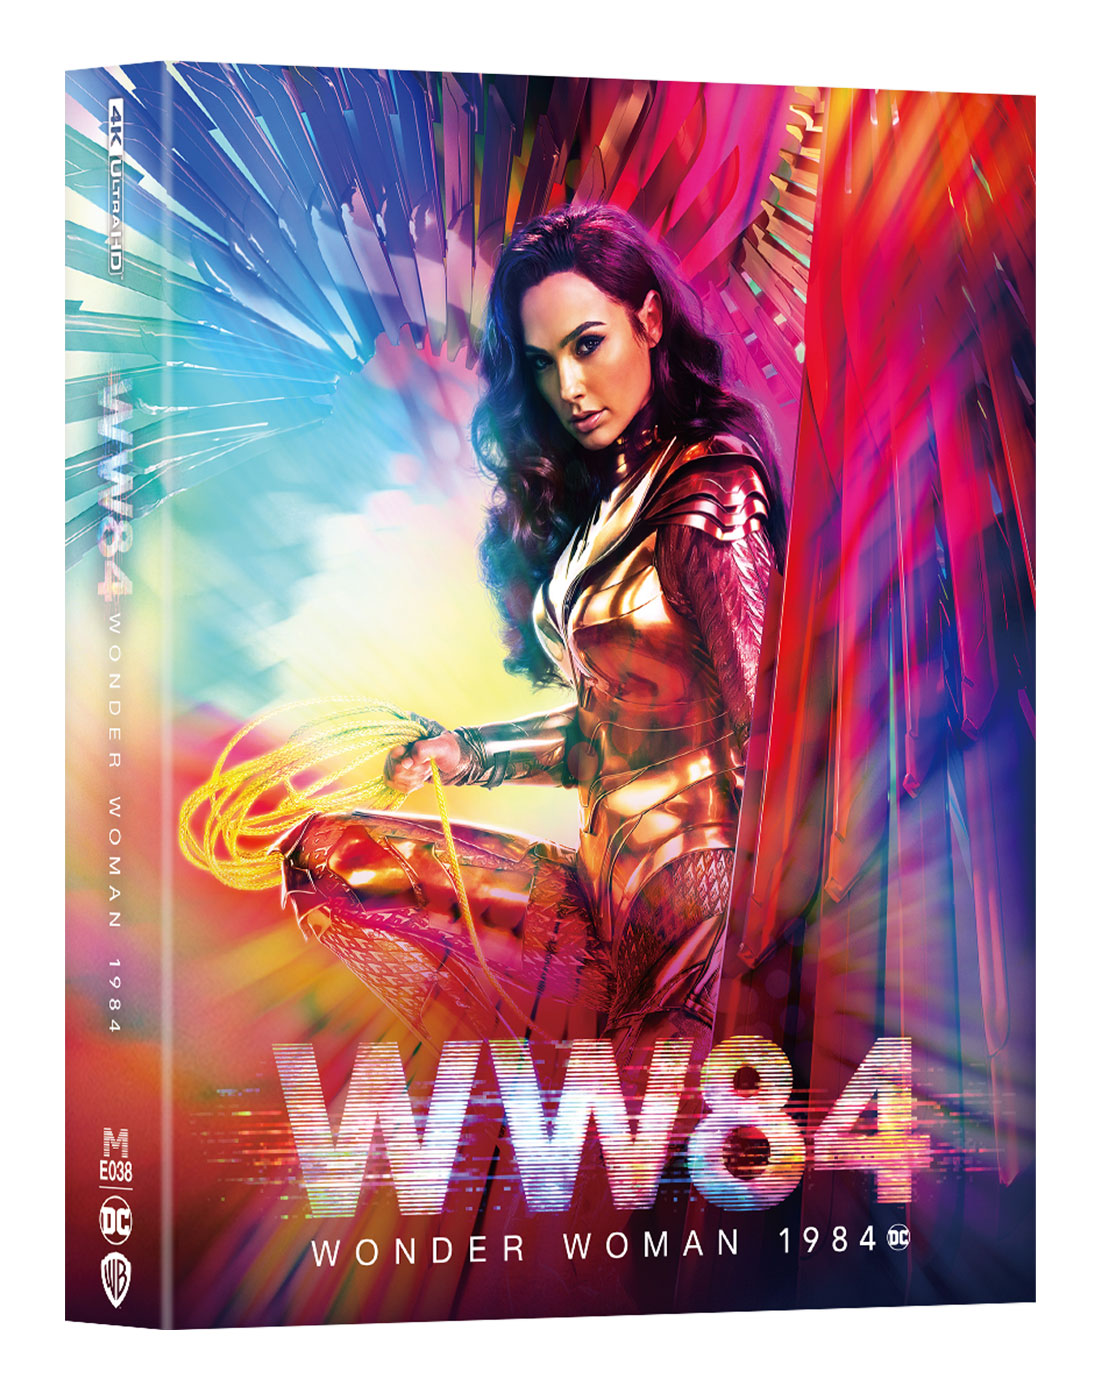 [ME#38] Wonder Woman 1984 Steelbook (Lenticular Full Slip)